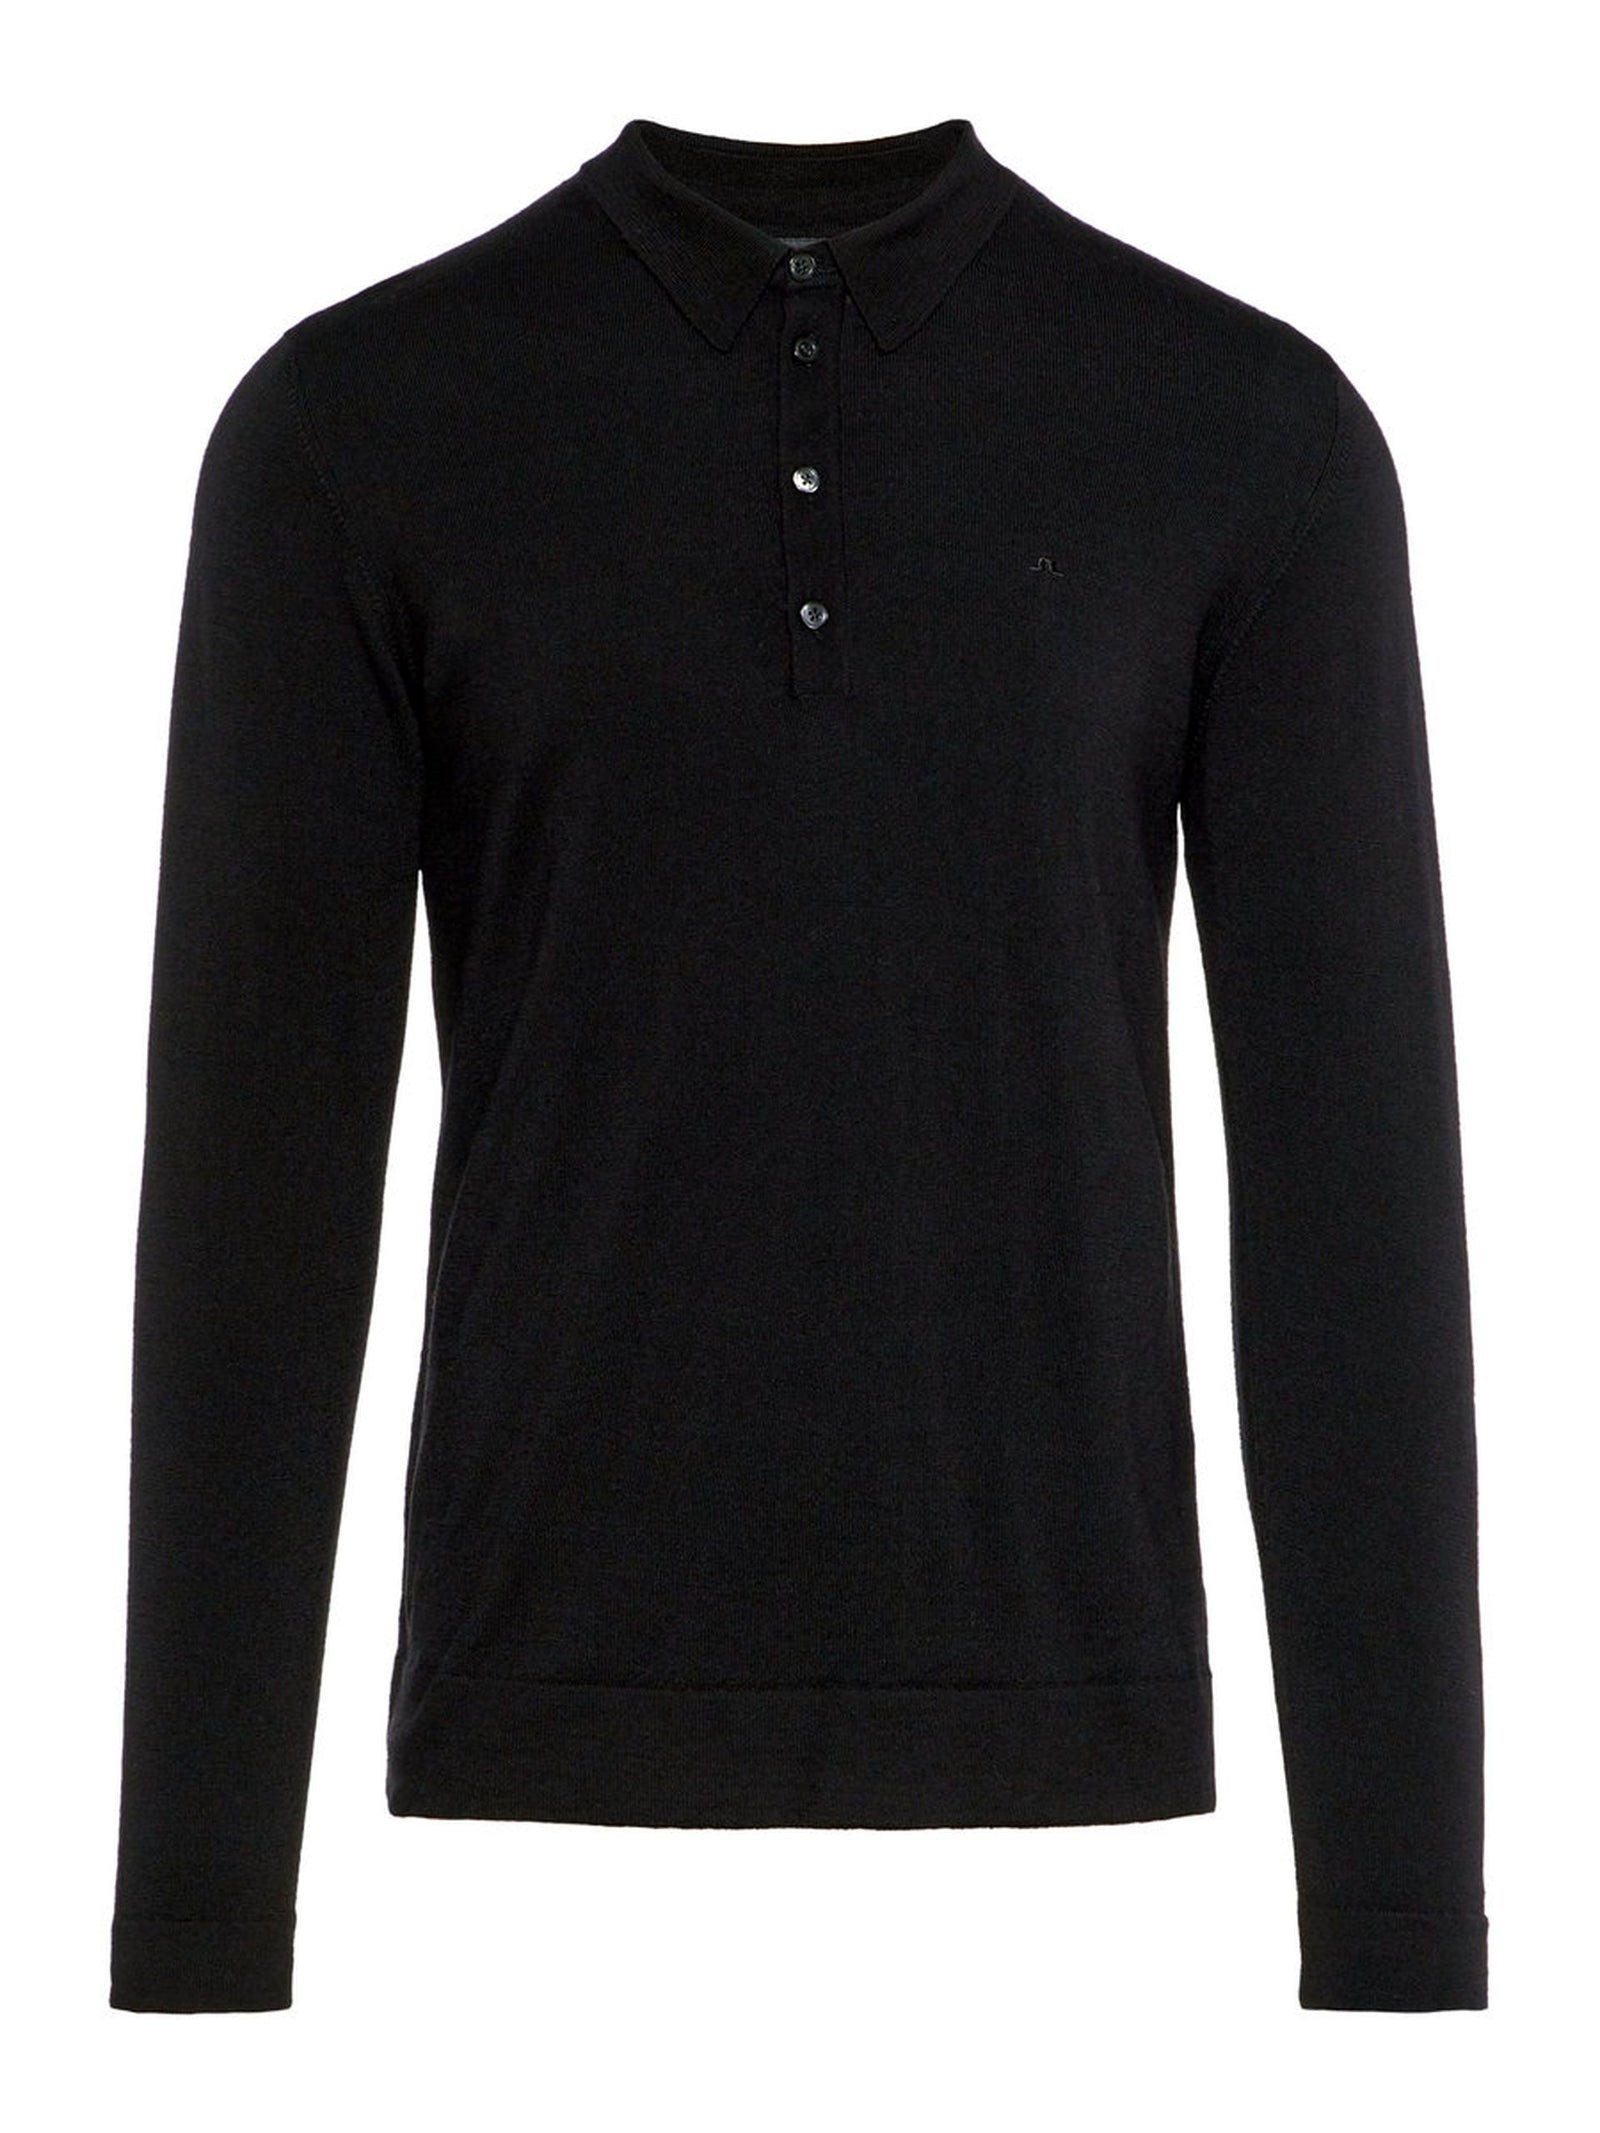 J. Lindeberg Newman Perfect Merino Polo Shirt in Black